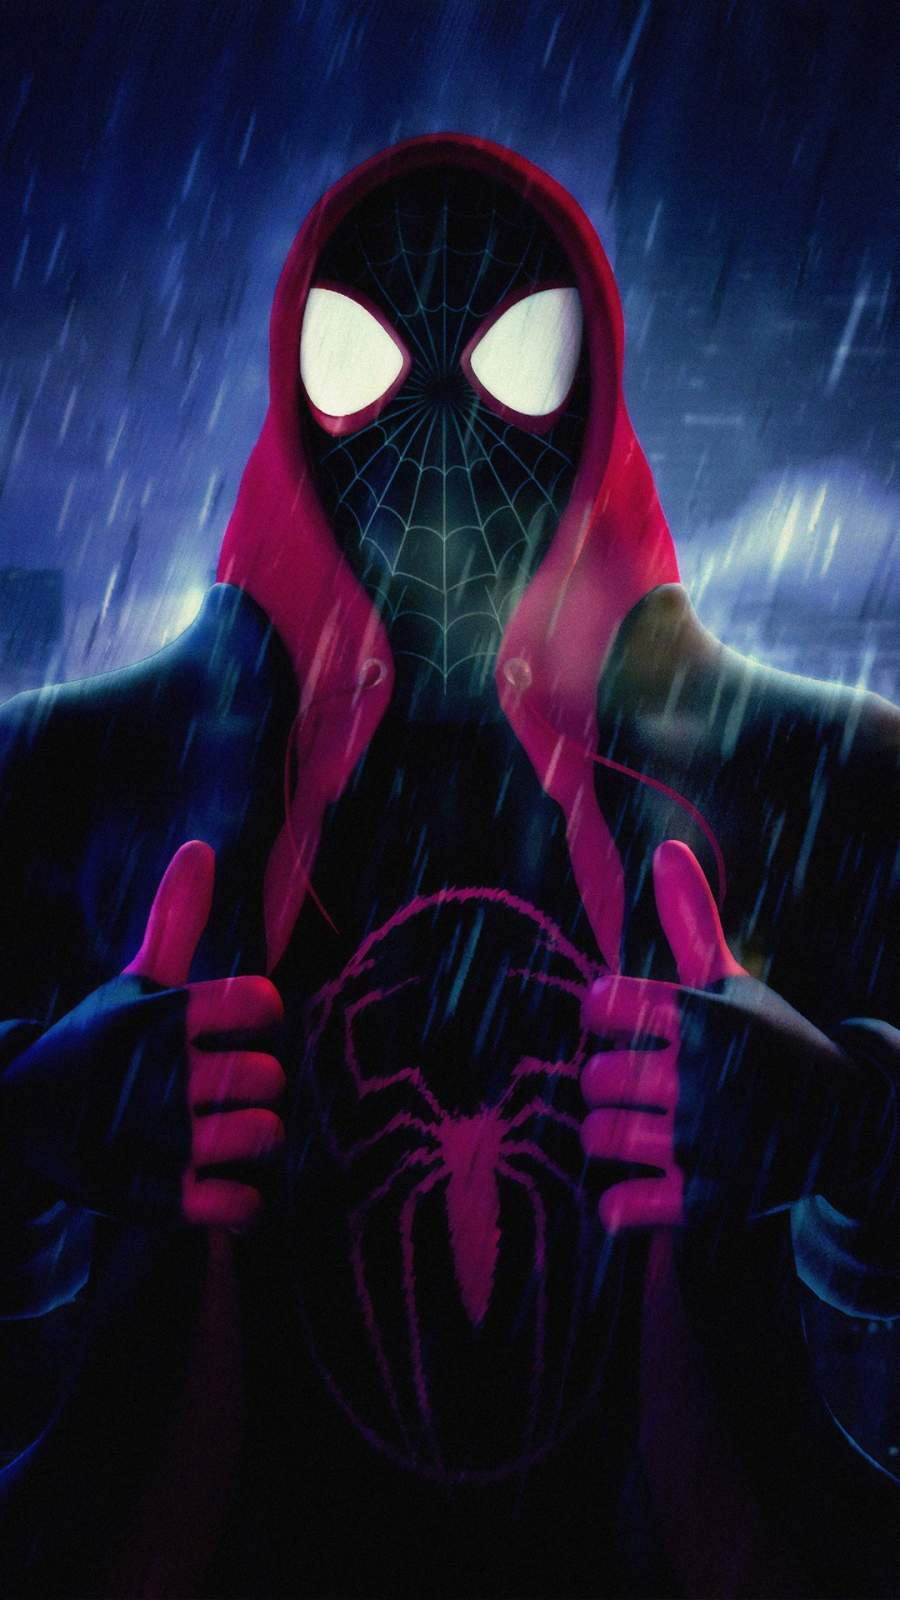 Hd Spiderman Images for mobile